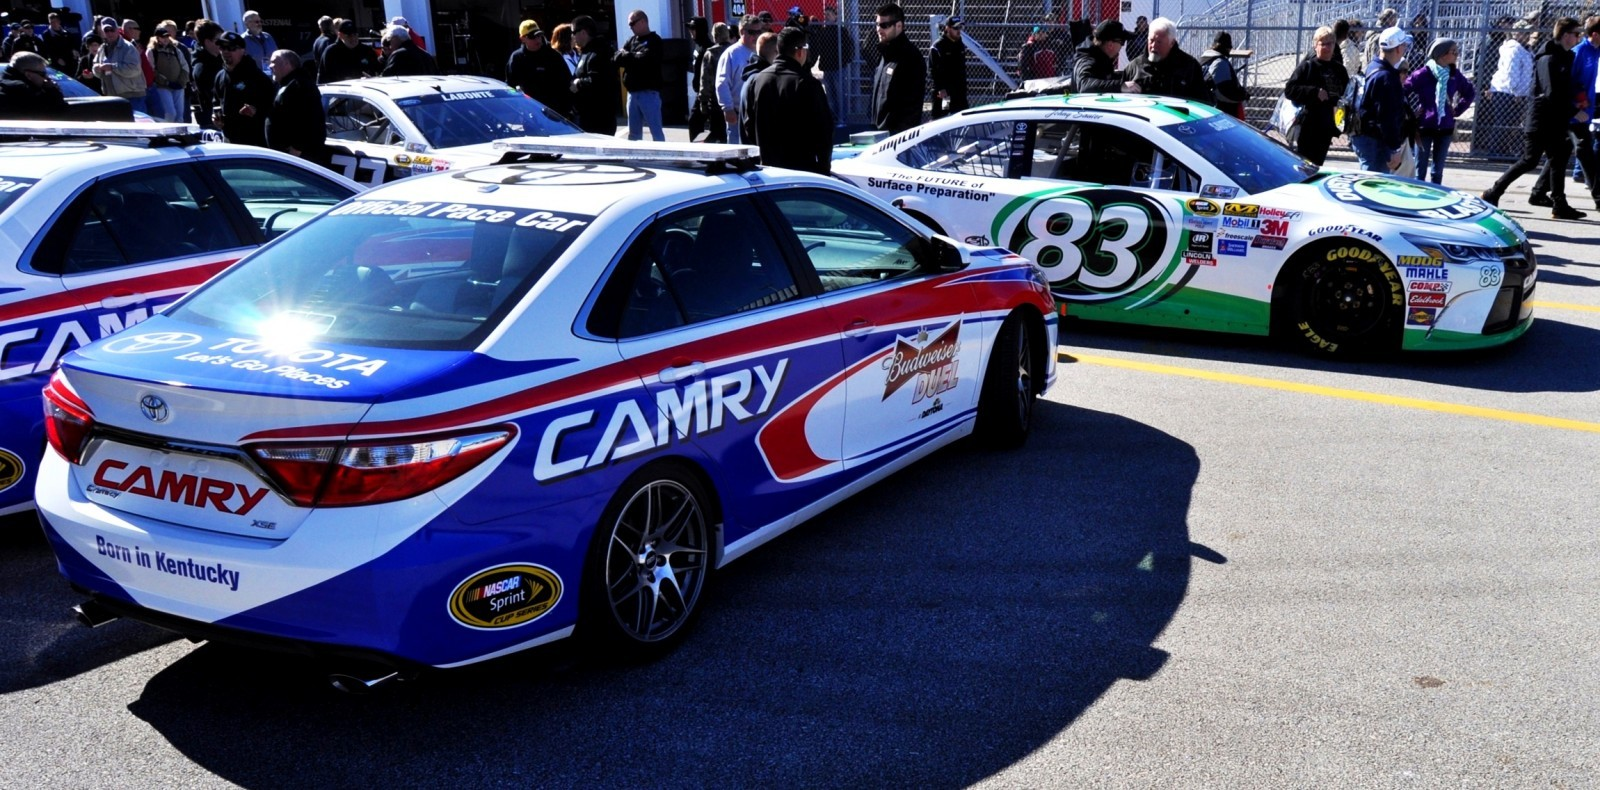 2015 Toyota Camry - DAYTONA 500 Official Pace Car 24